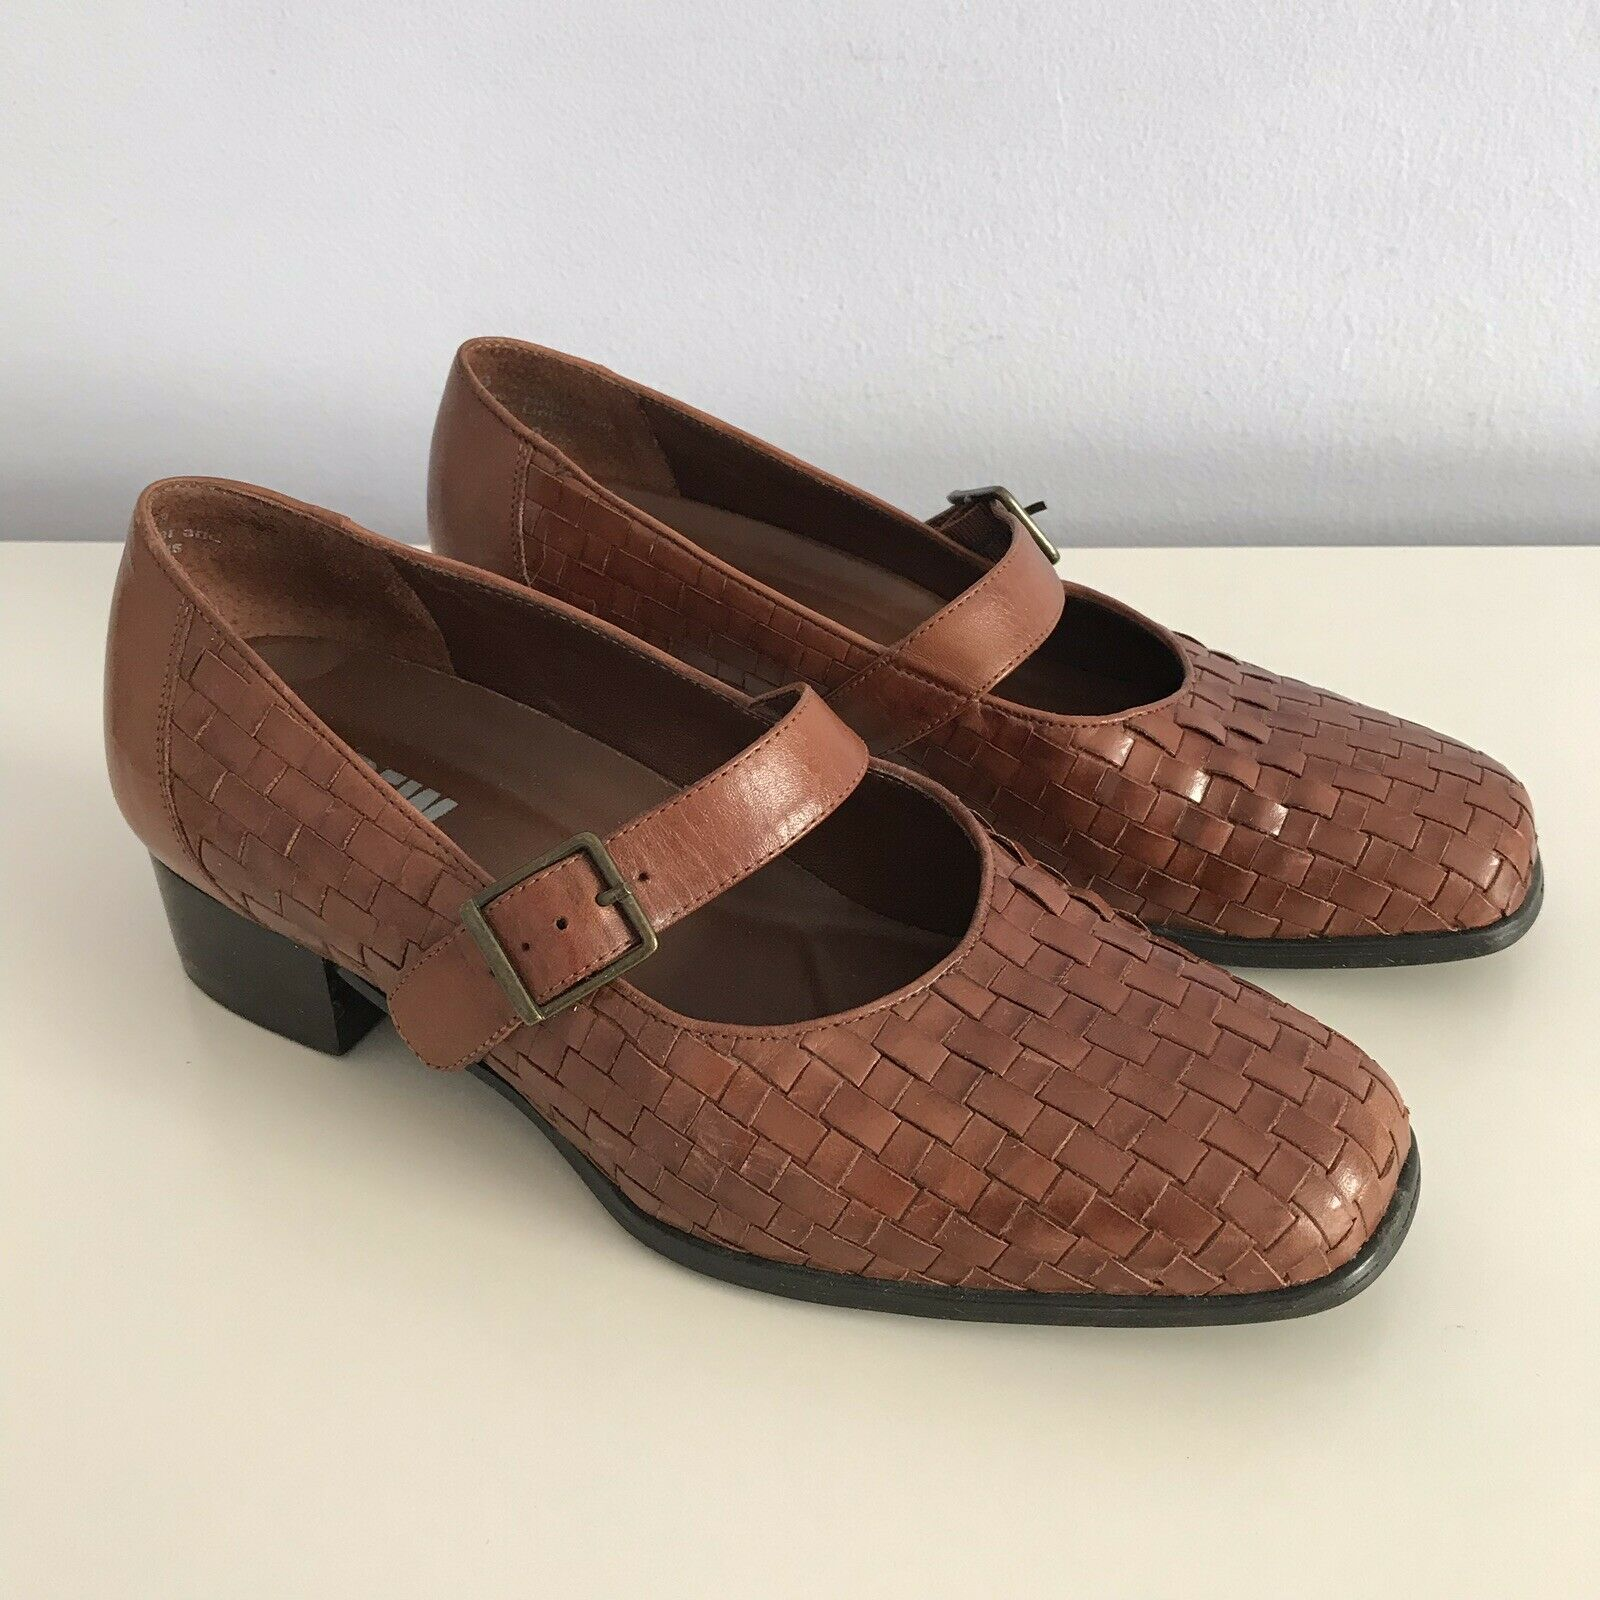 Drew TRISH Woven Pumps Mary Jane Loafers Womens 6.5 - Brown Leather Basket Weave